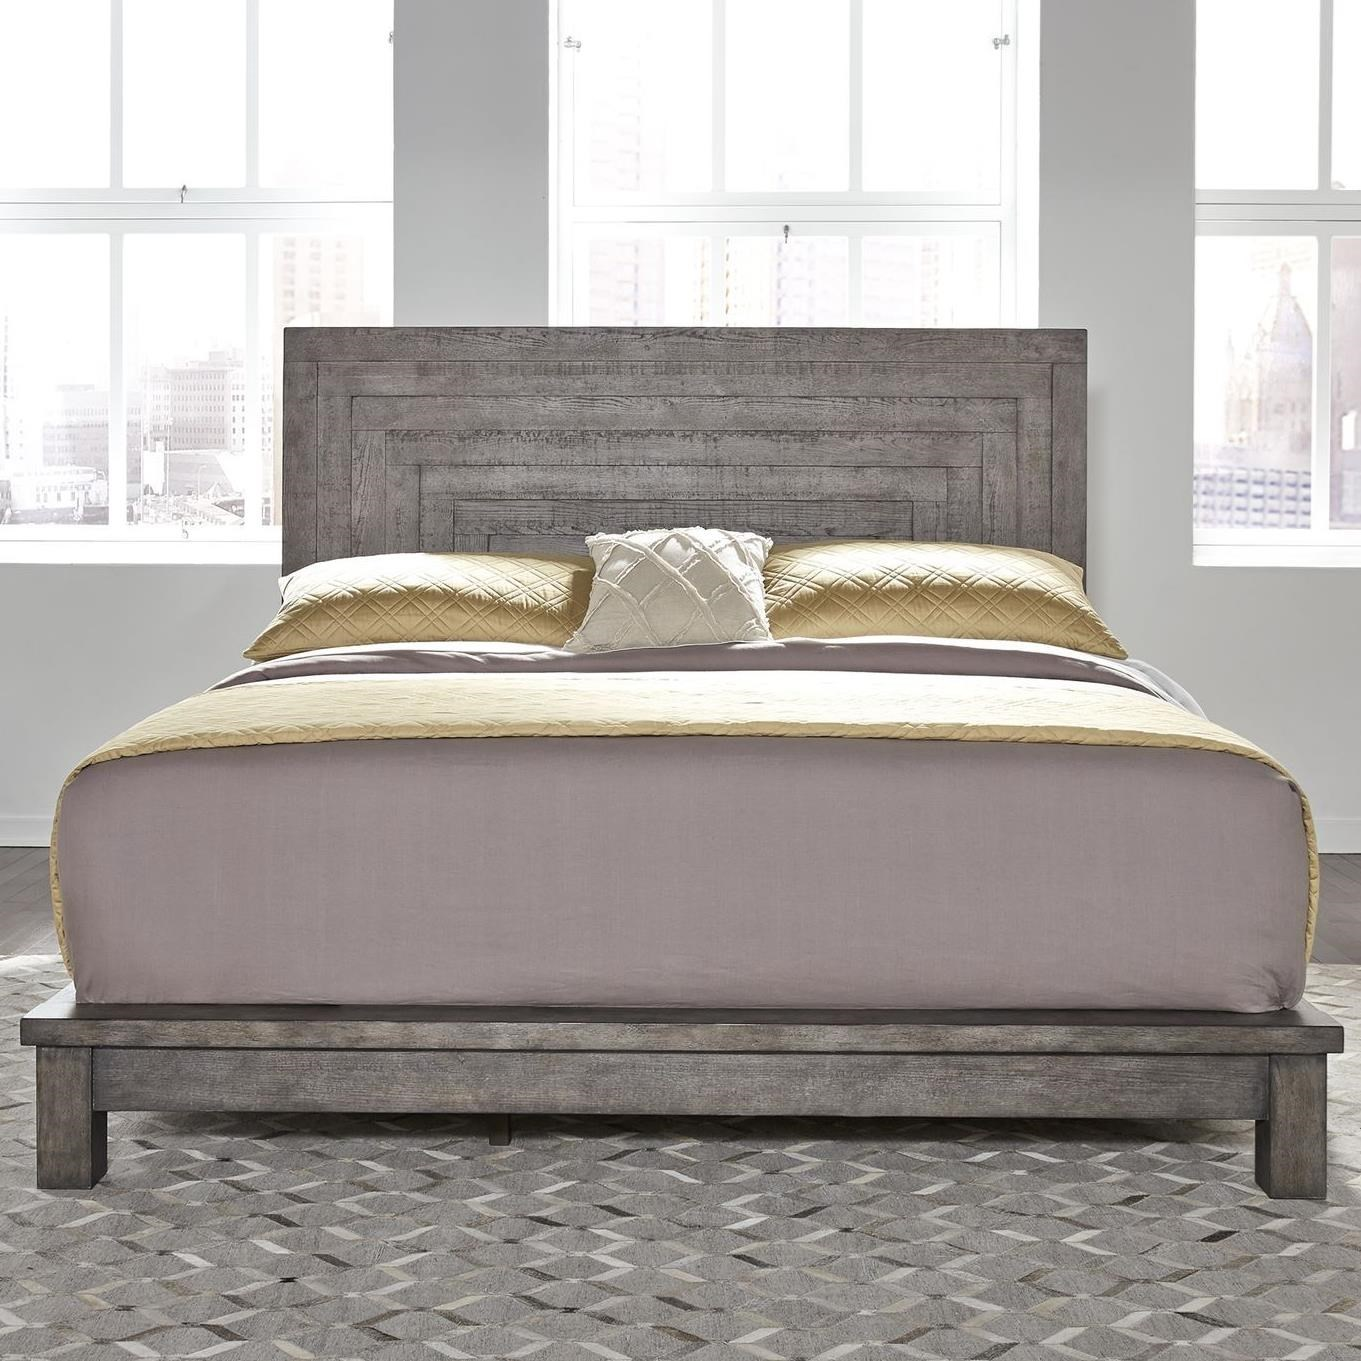 Picture of: Liberty Furniture Modern Farmhouse Contemporary King Platform Bed Zak S Home Platform Beds Low Profile Beds